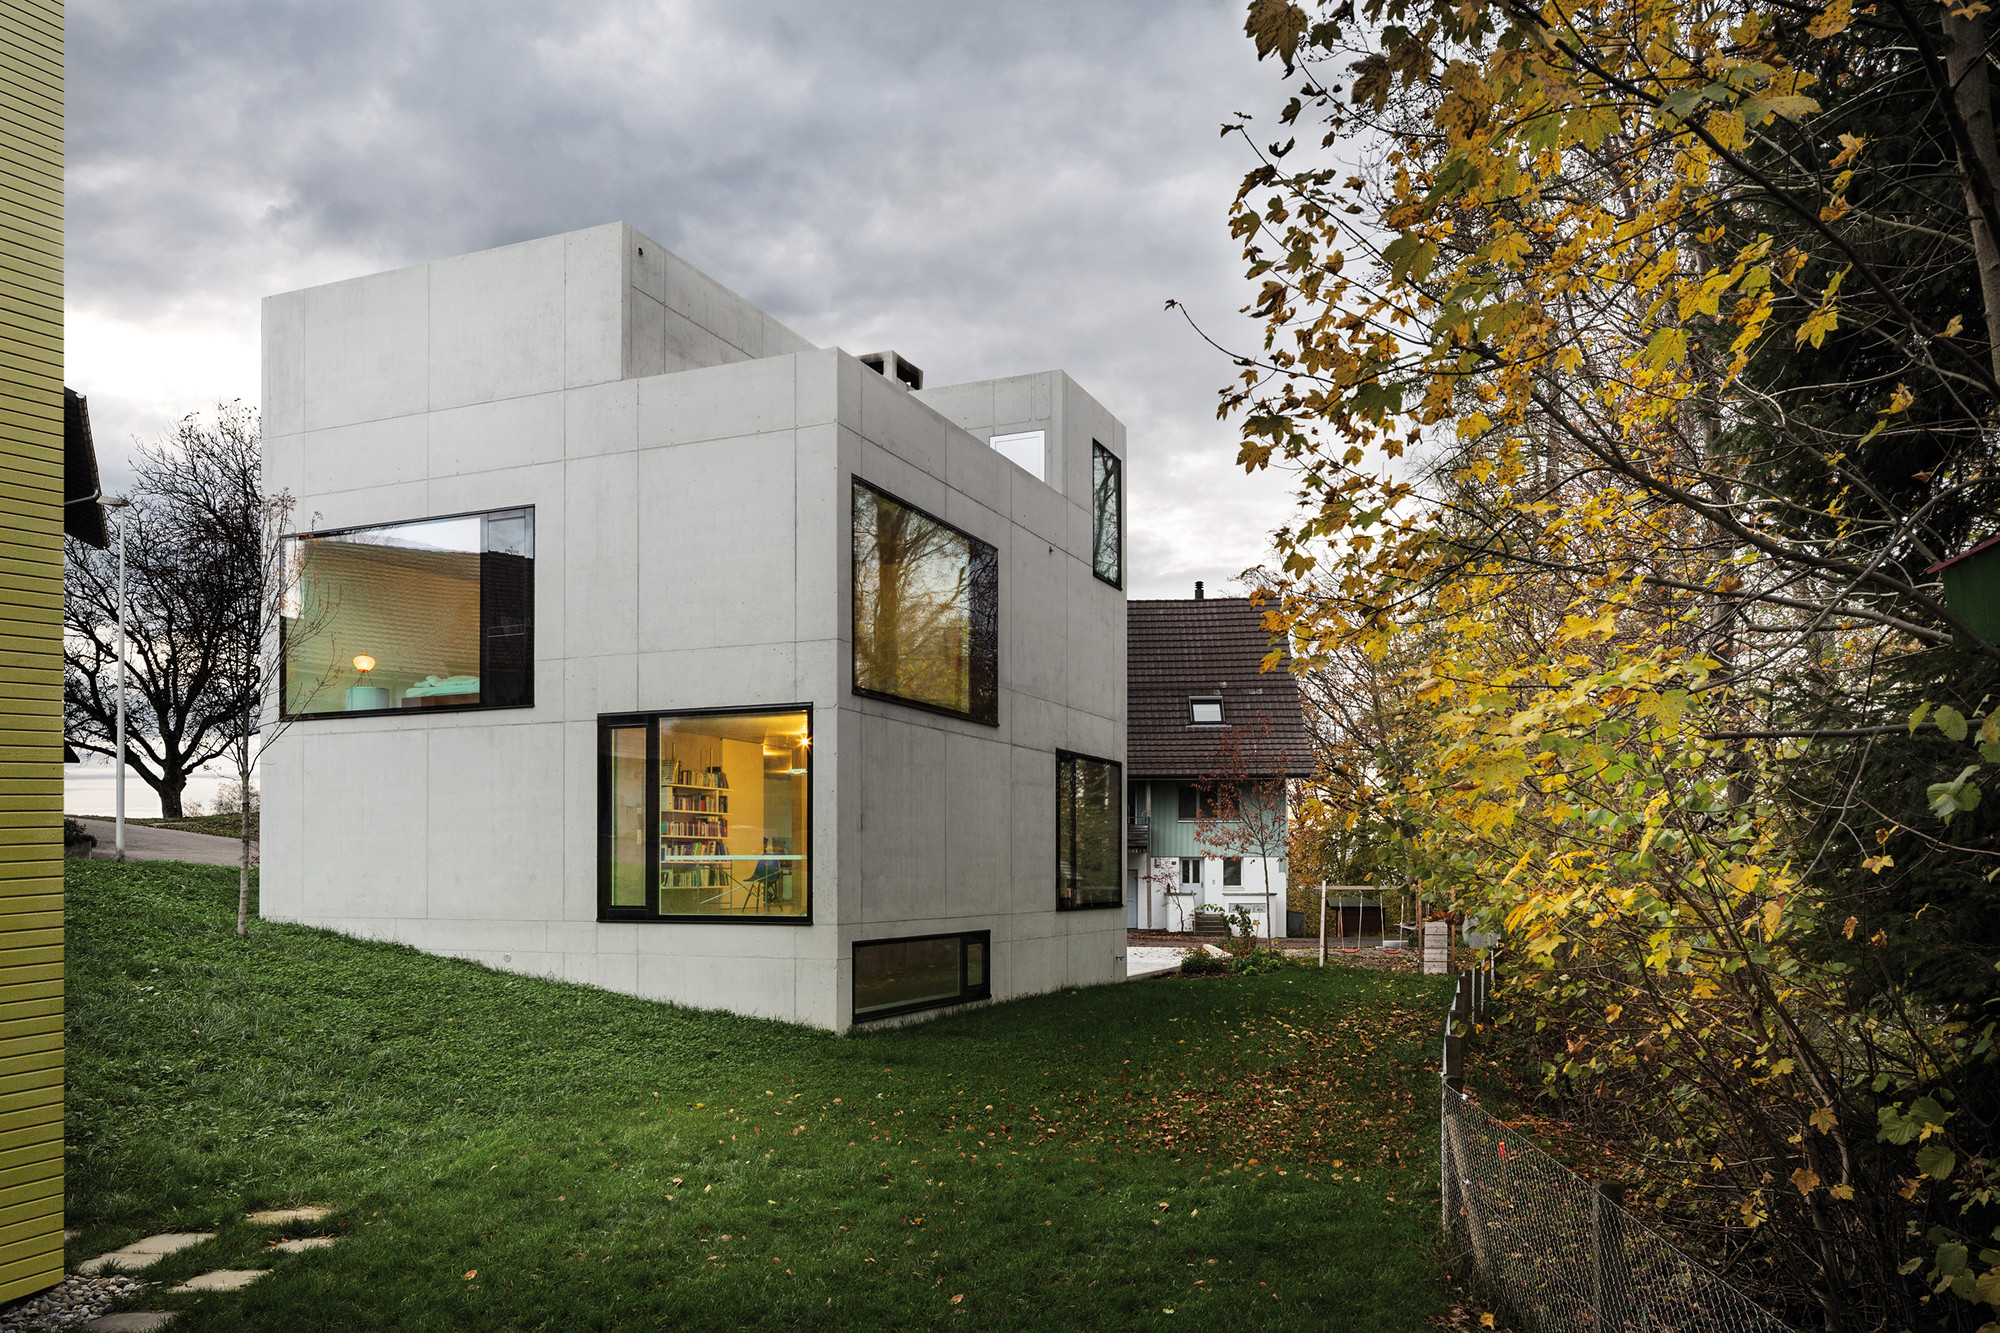 Mühlestrasse Residential and Studio Building / AmreinHerzig, © Lucas Peters